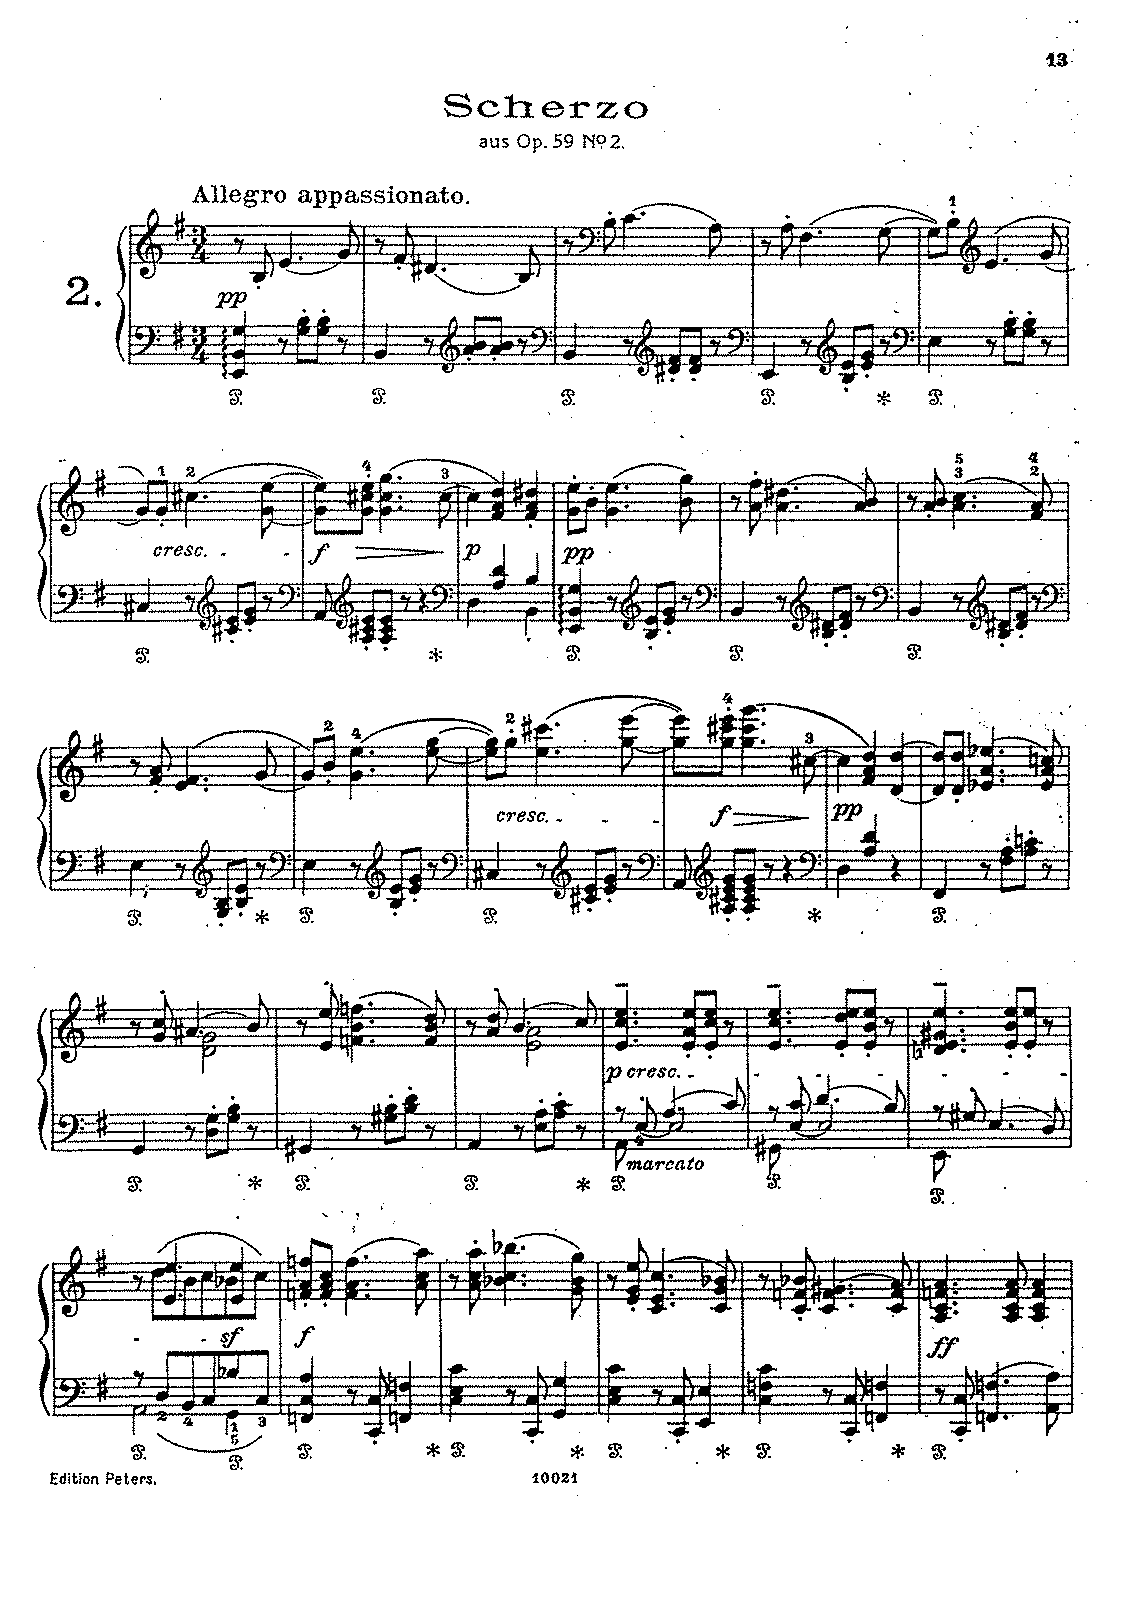 PMLP05113-Beethoven-Tausig Op.59 No.2.pdf